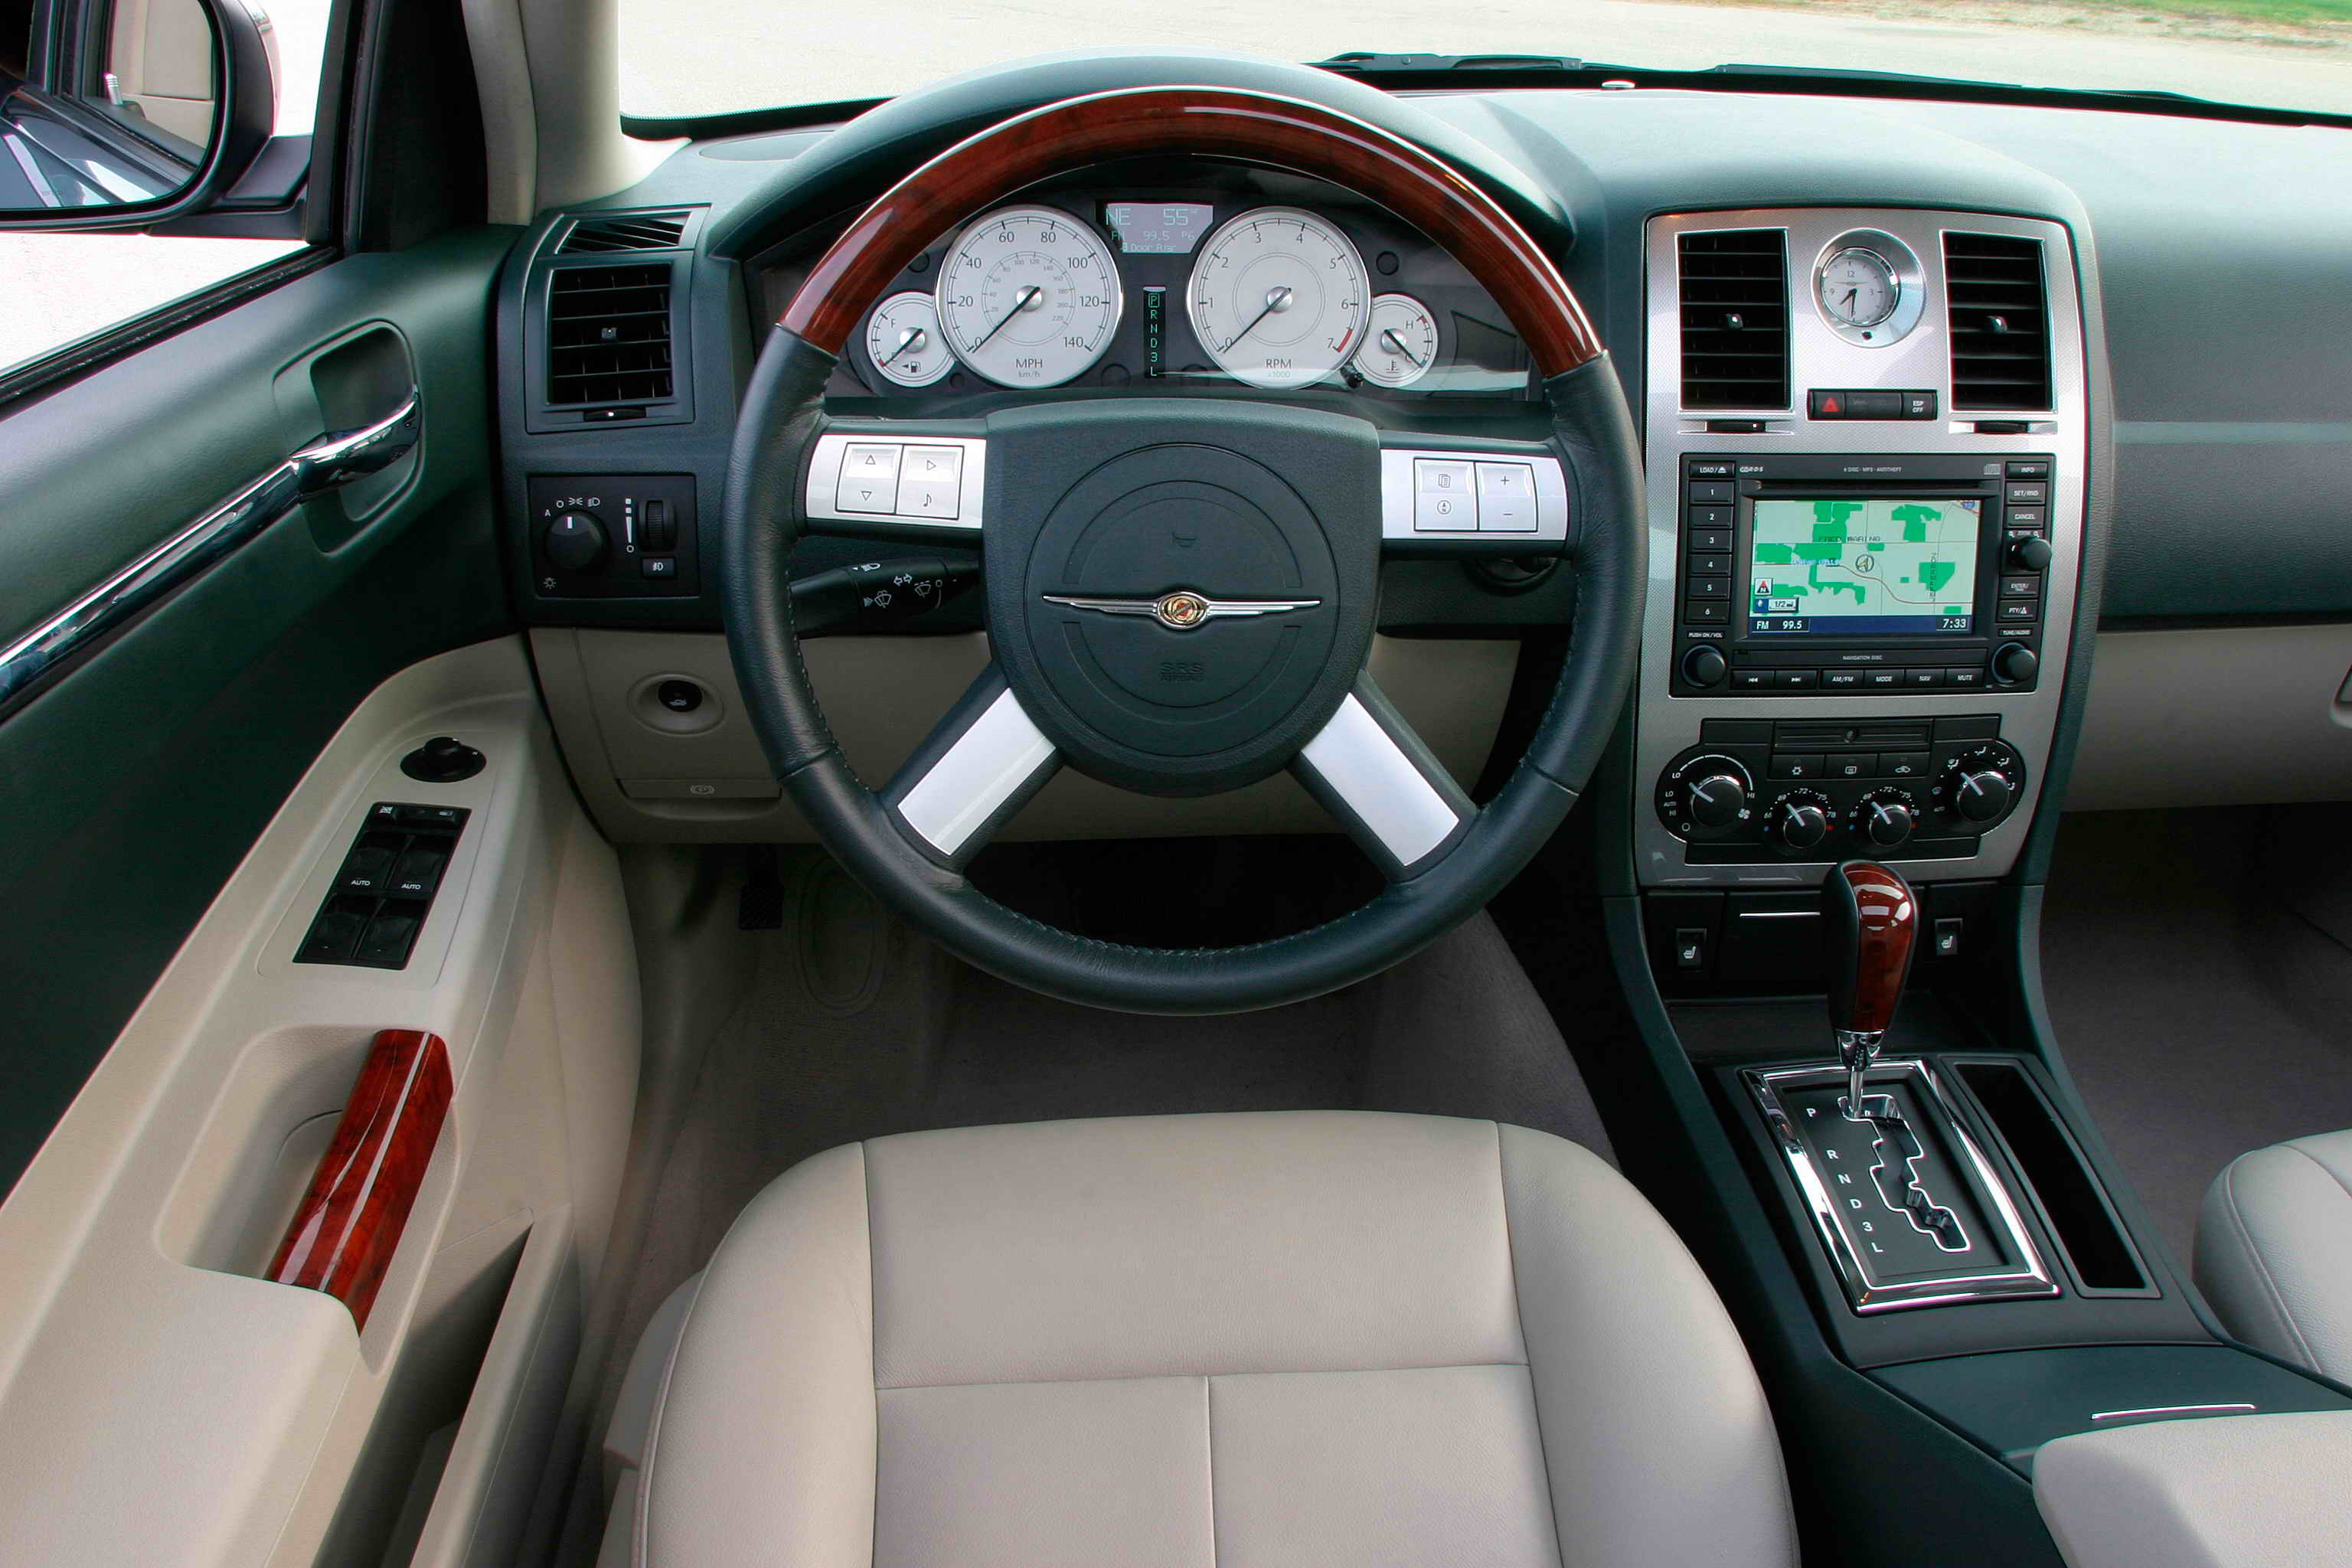 2006 Chrysler 300c | Top Speed